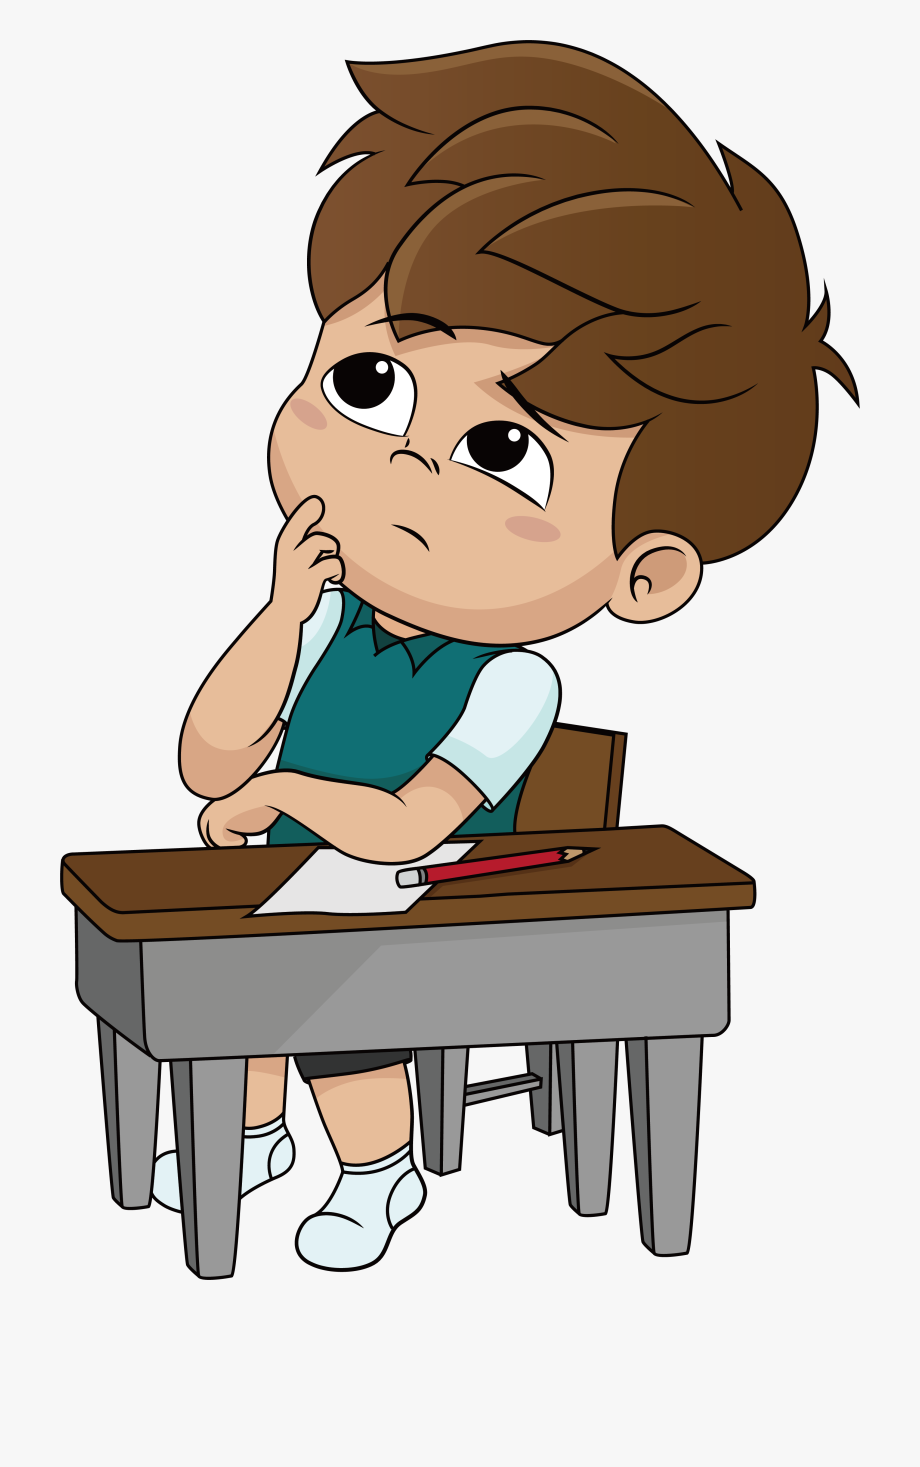 Clipart of boy thinking jpg royalty free library Boy Thinking Png - Boy Thinking Clipart #142269 - Free Cliparts on ... jpg royalty free library